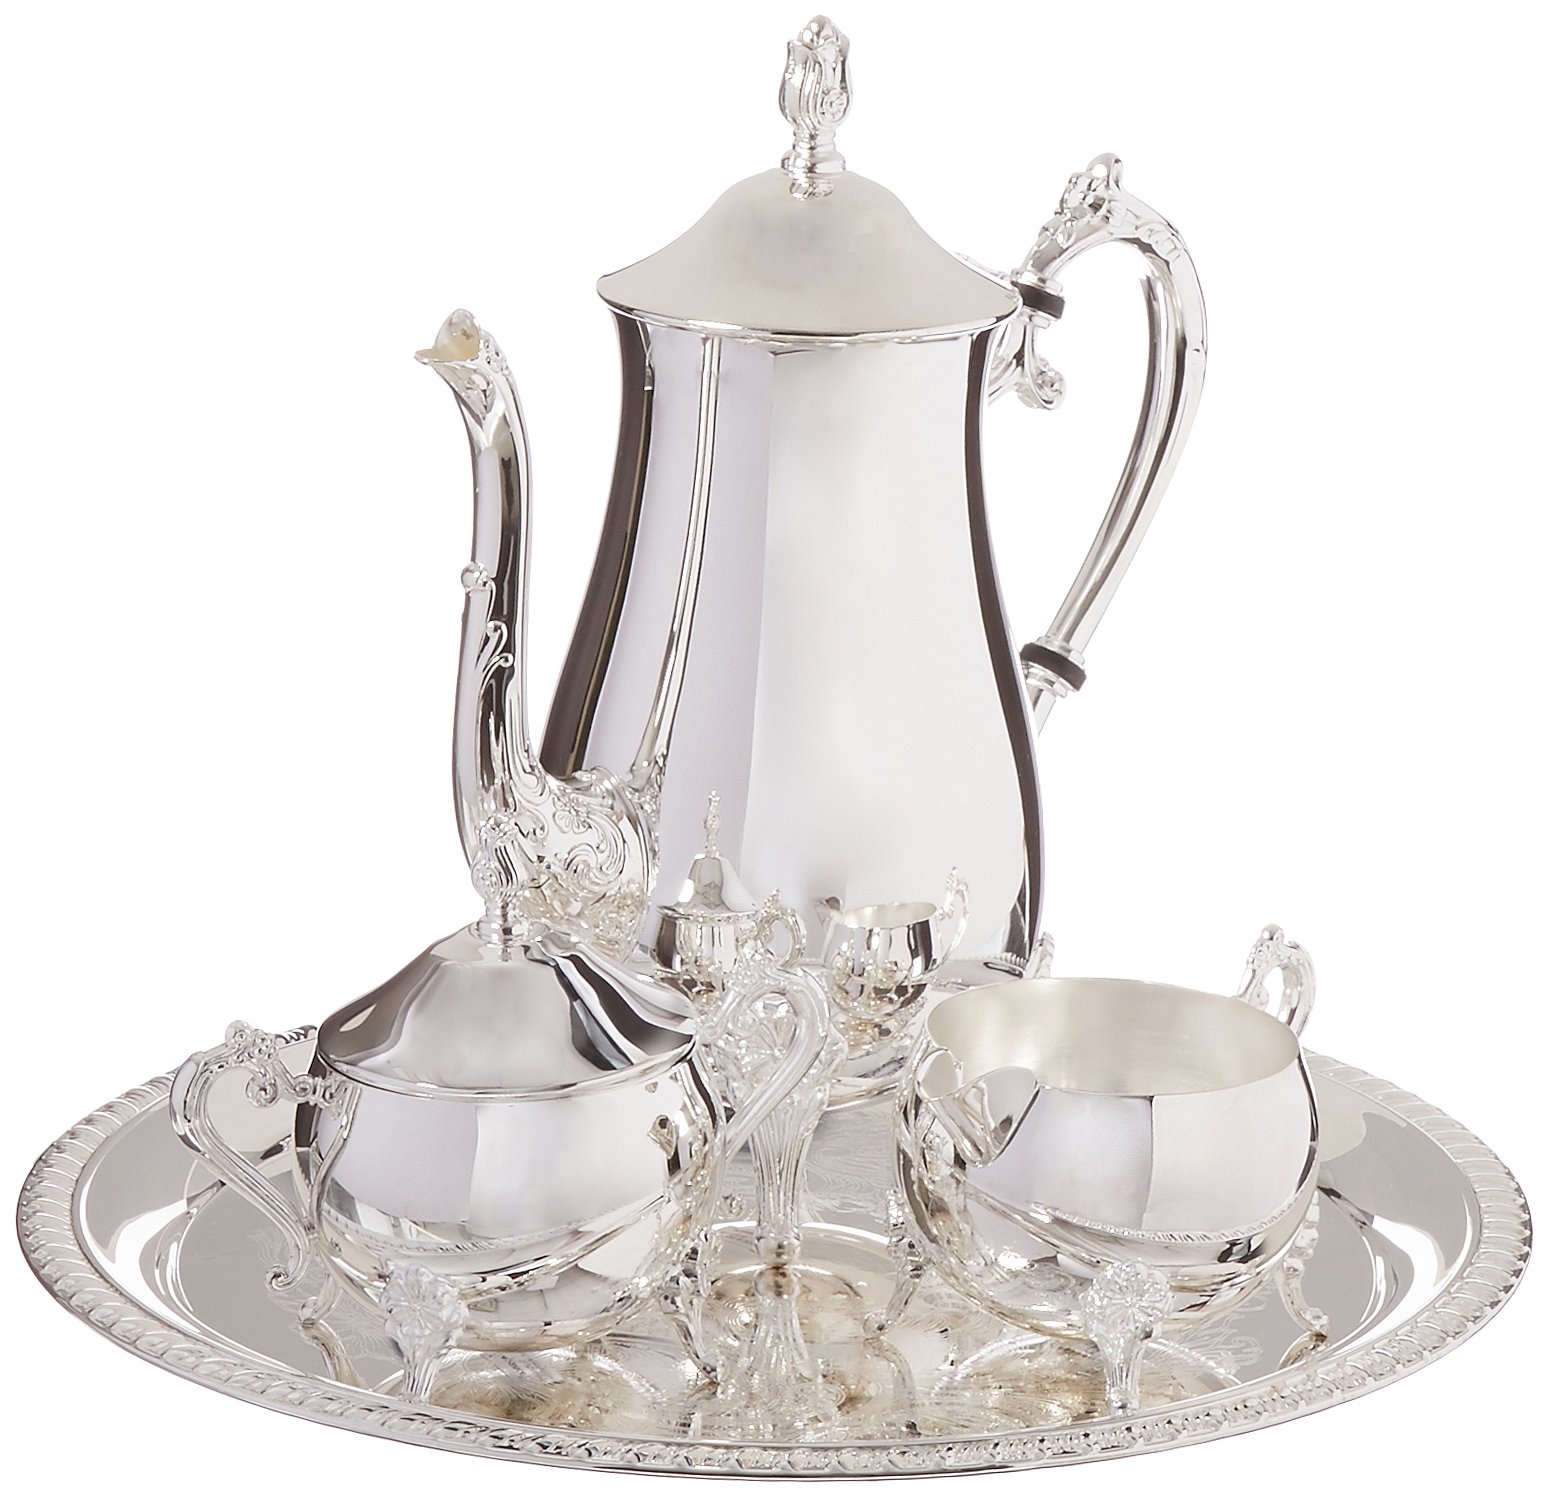 Elegance Silver 8917 Hotel Collection Coffee Service Set, 4 Piece by Elegance Silver